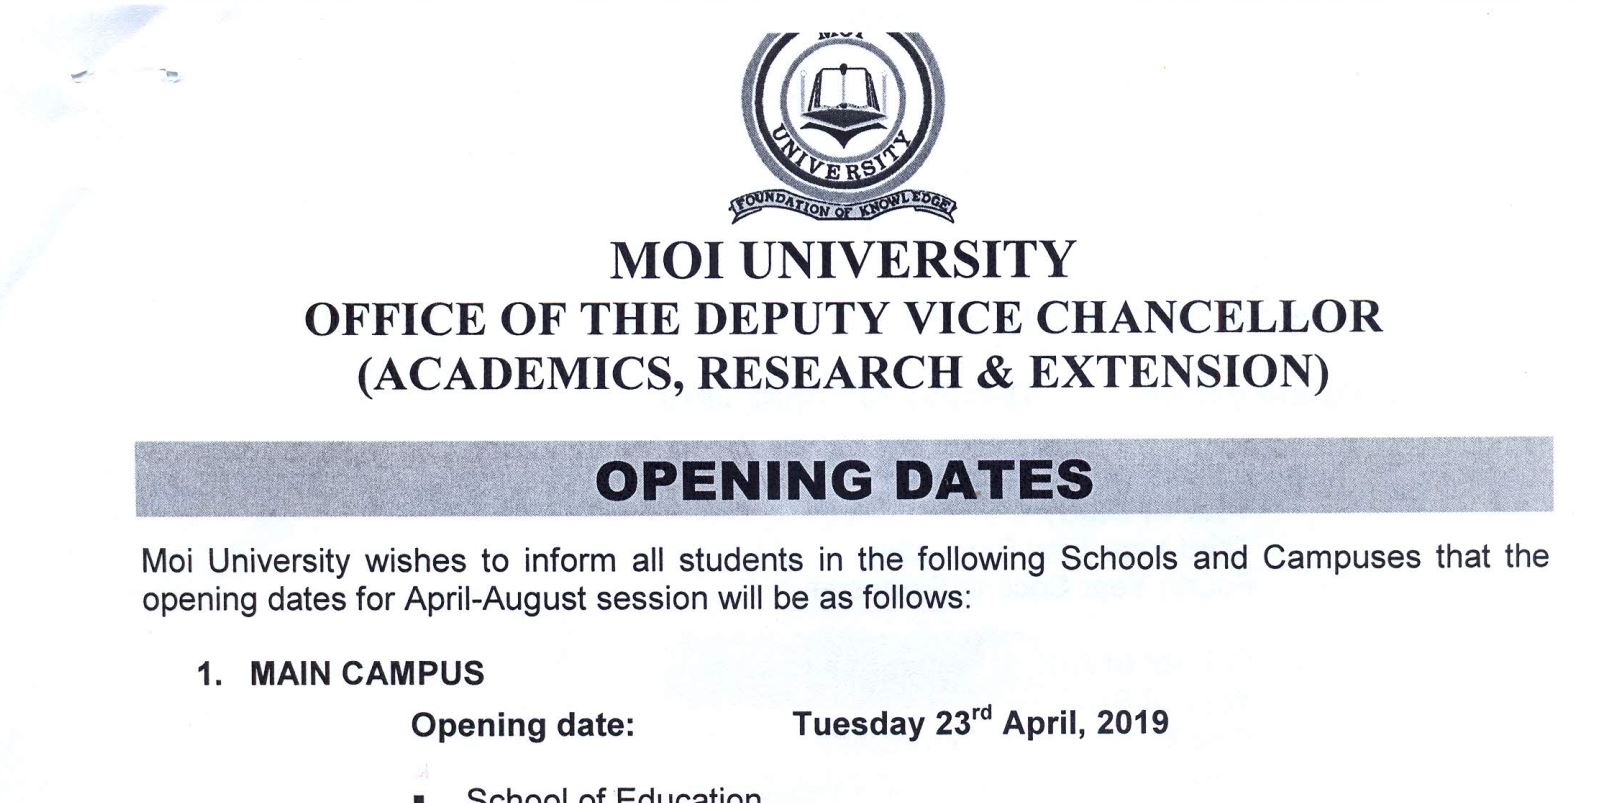 Update on Moi University Opening dates, 2019 for All campus and Schools